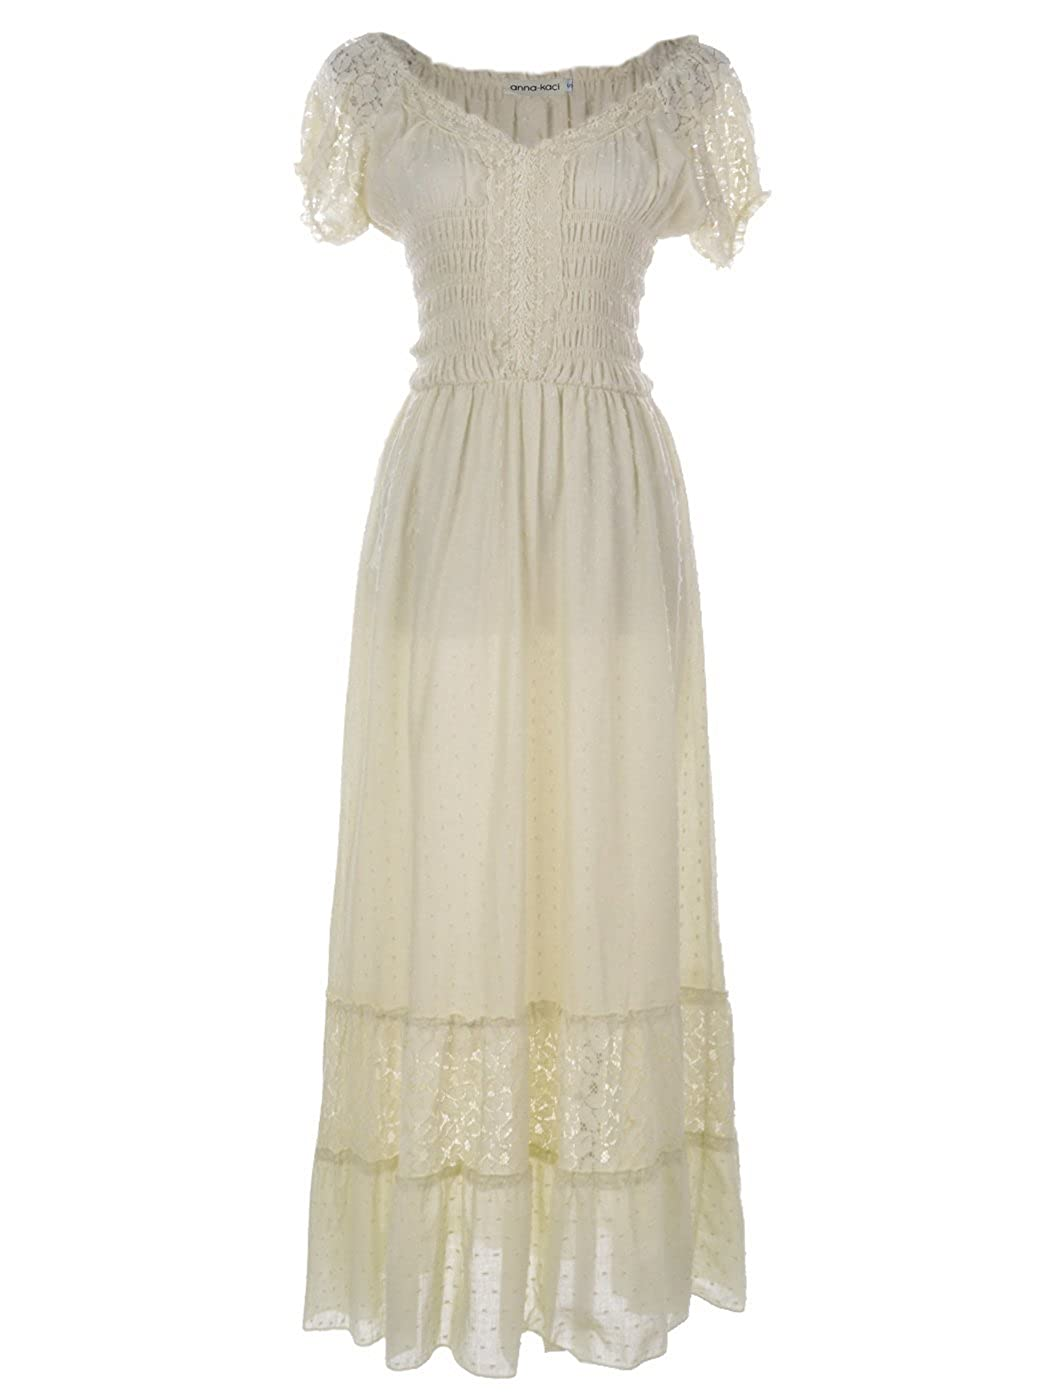 Vintage Style Wedding Dresses, Vintage Inspired Wedding Gowns Anna-Kaci Renaissance Peasant Maiden Boho Inspired Cap Sleeve Lace Trim Dress $39.99 AT vintagedancer.com